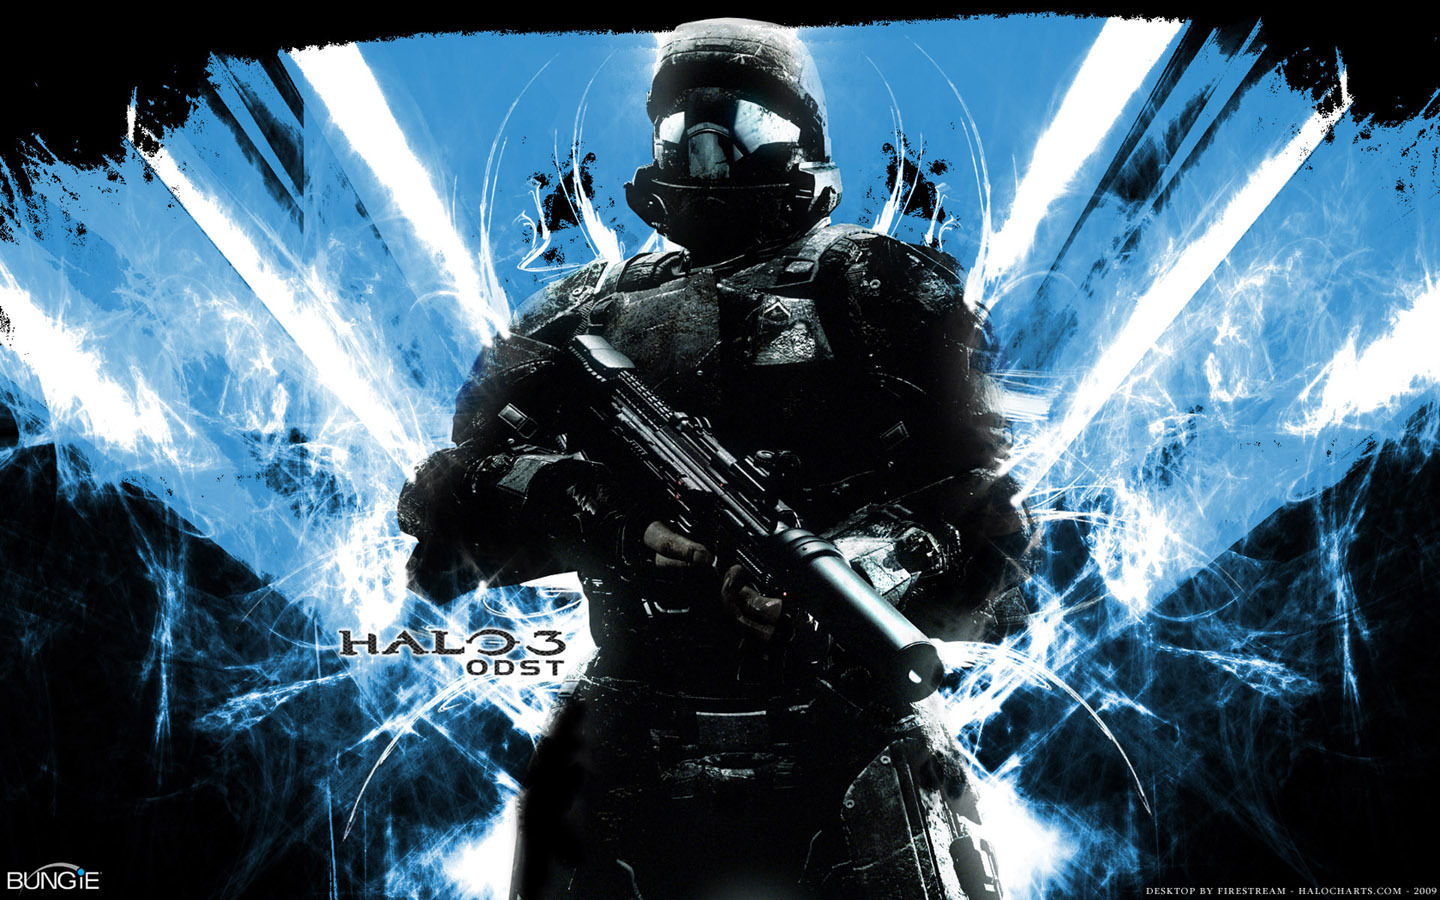 halo 3 odst images odst hd wallpaper and background photos (16993240)